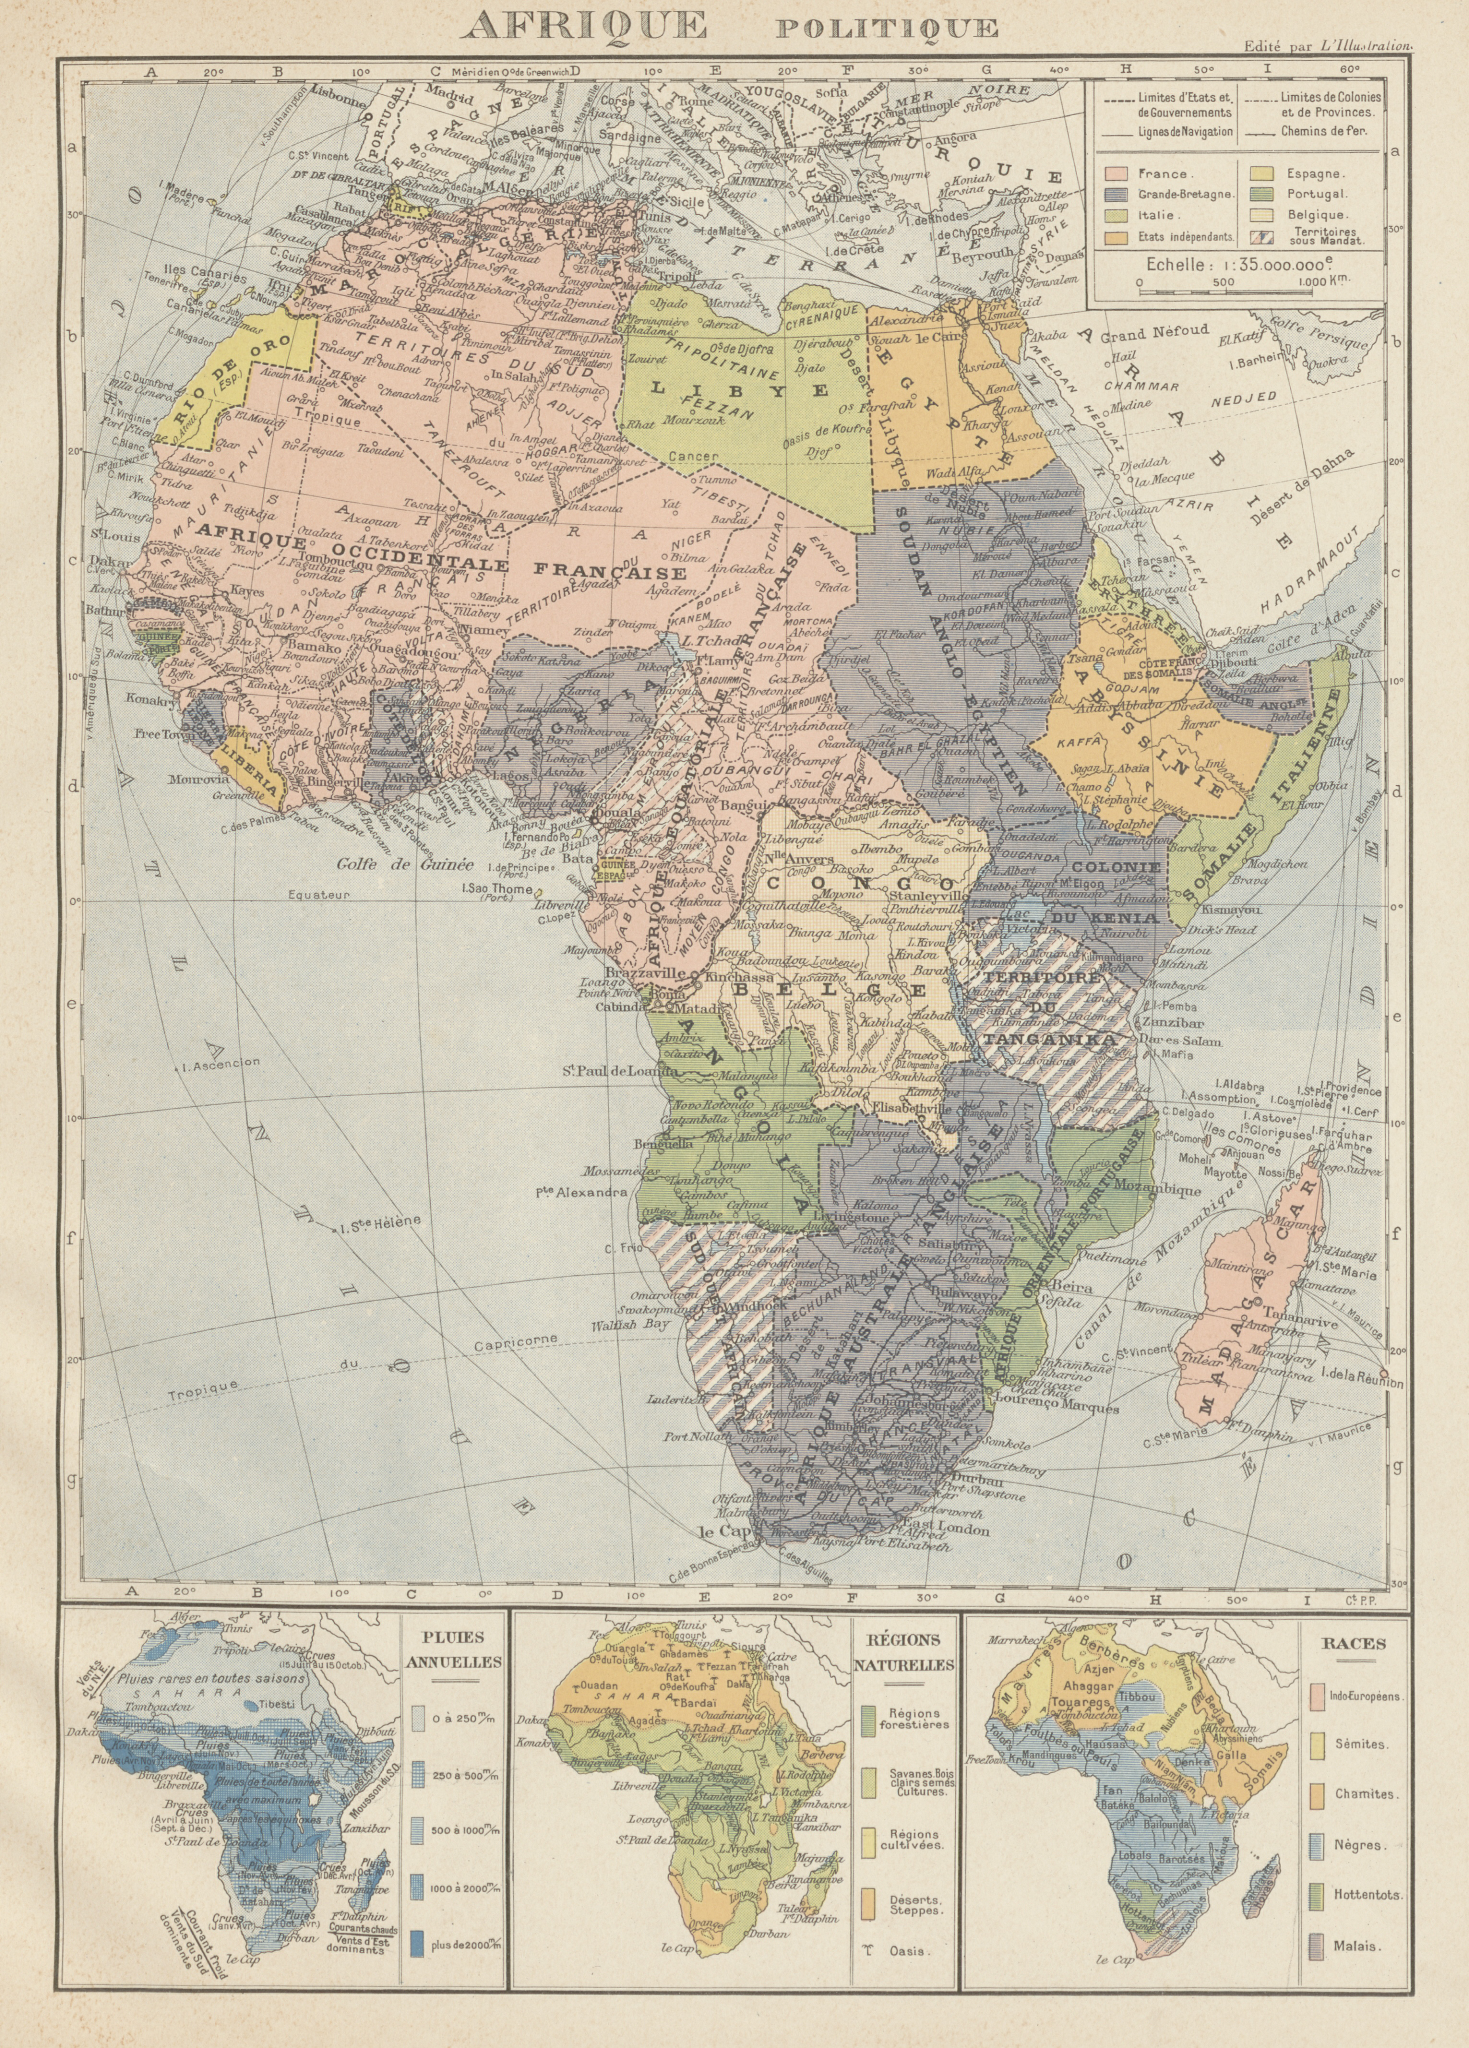 Associate Product COLONIAL AFRICA Afrique. League of Nations Mandates. Ethnicity 1929 old map